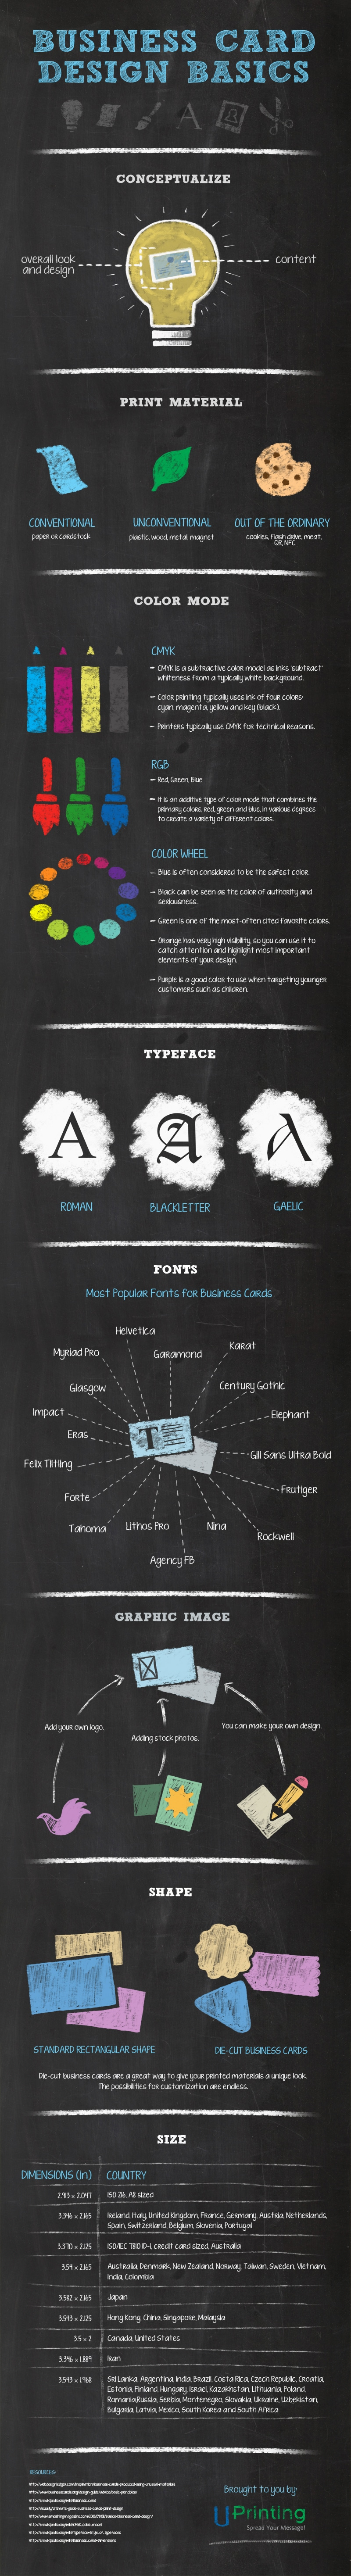 business-card-design-basics-infographic